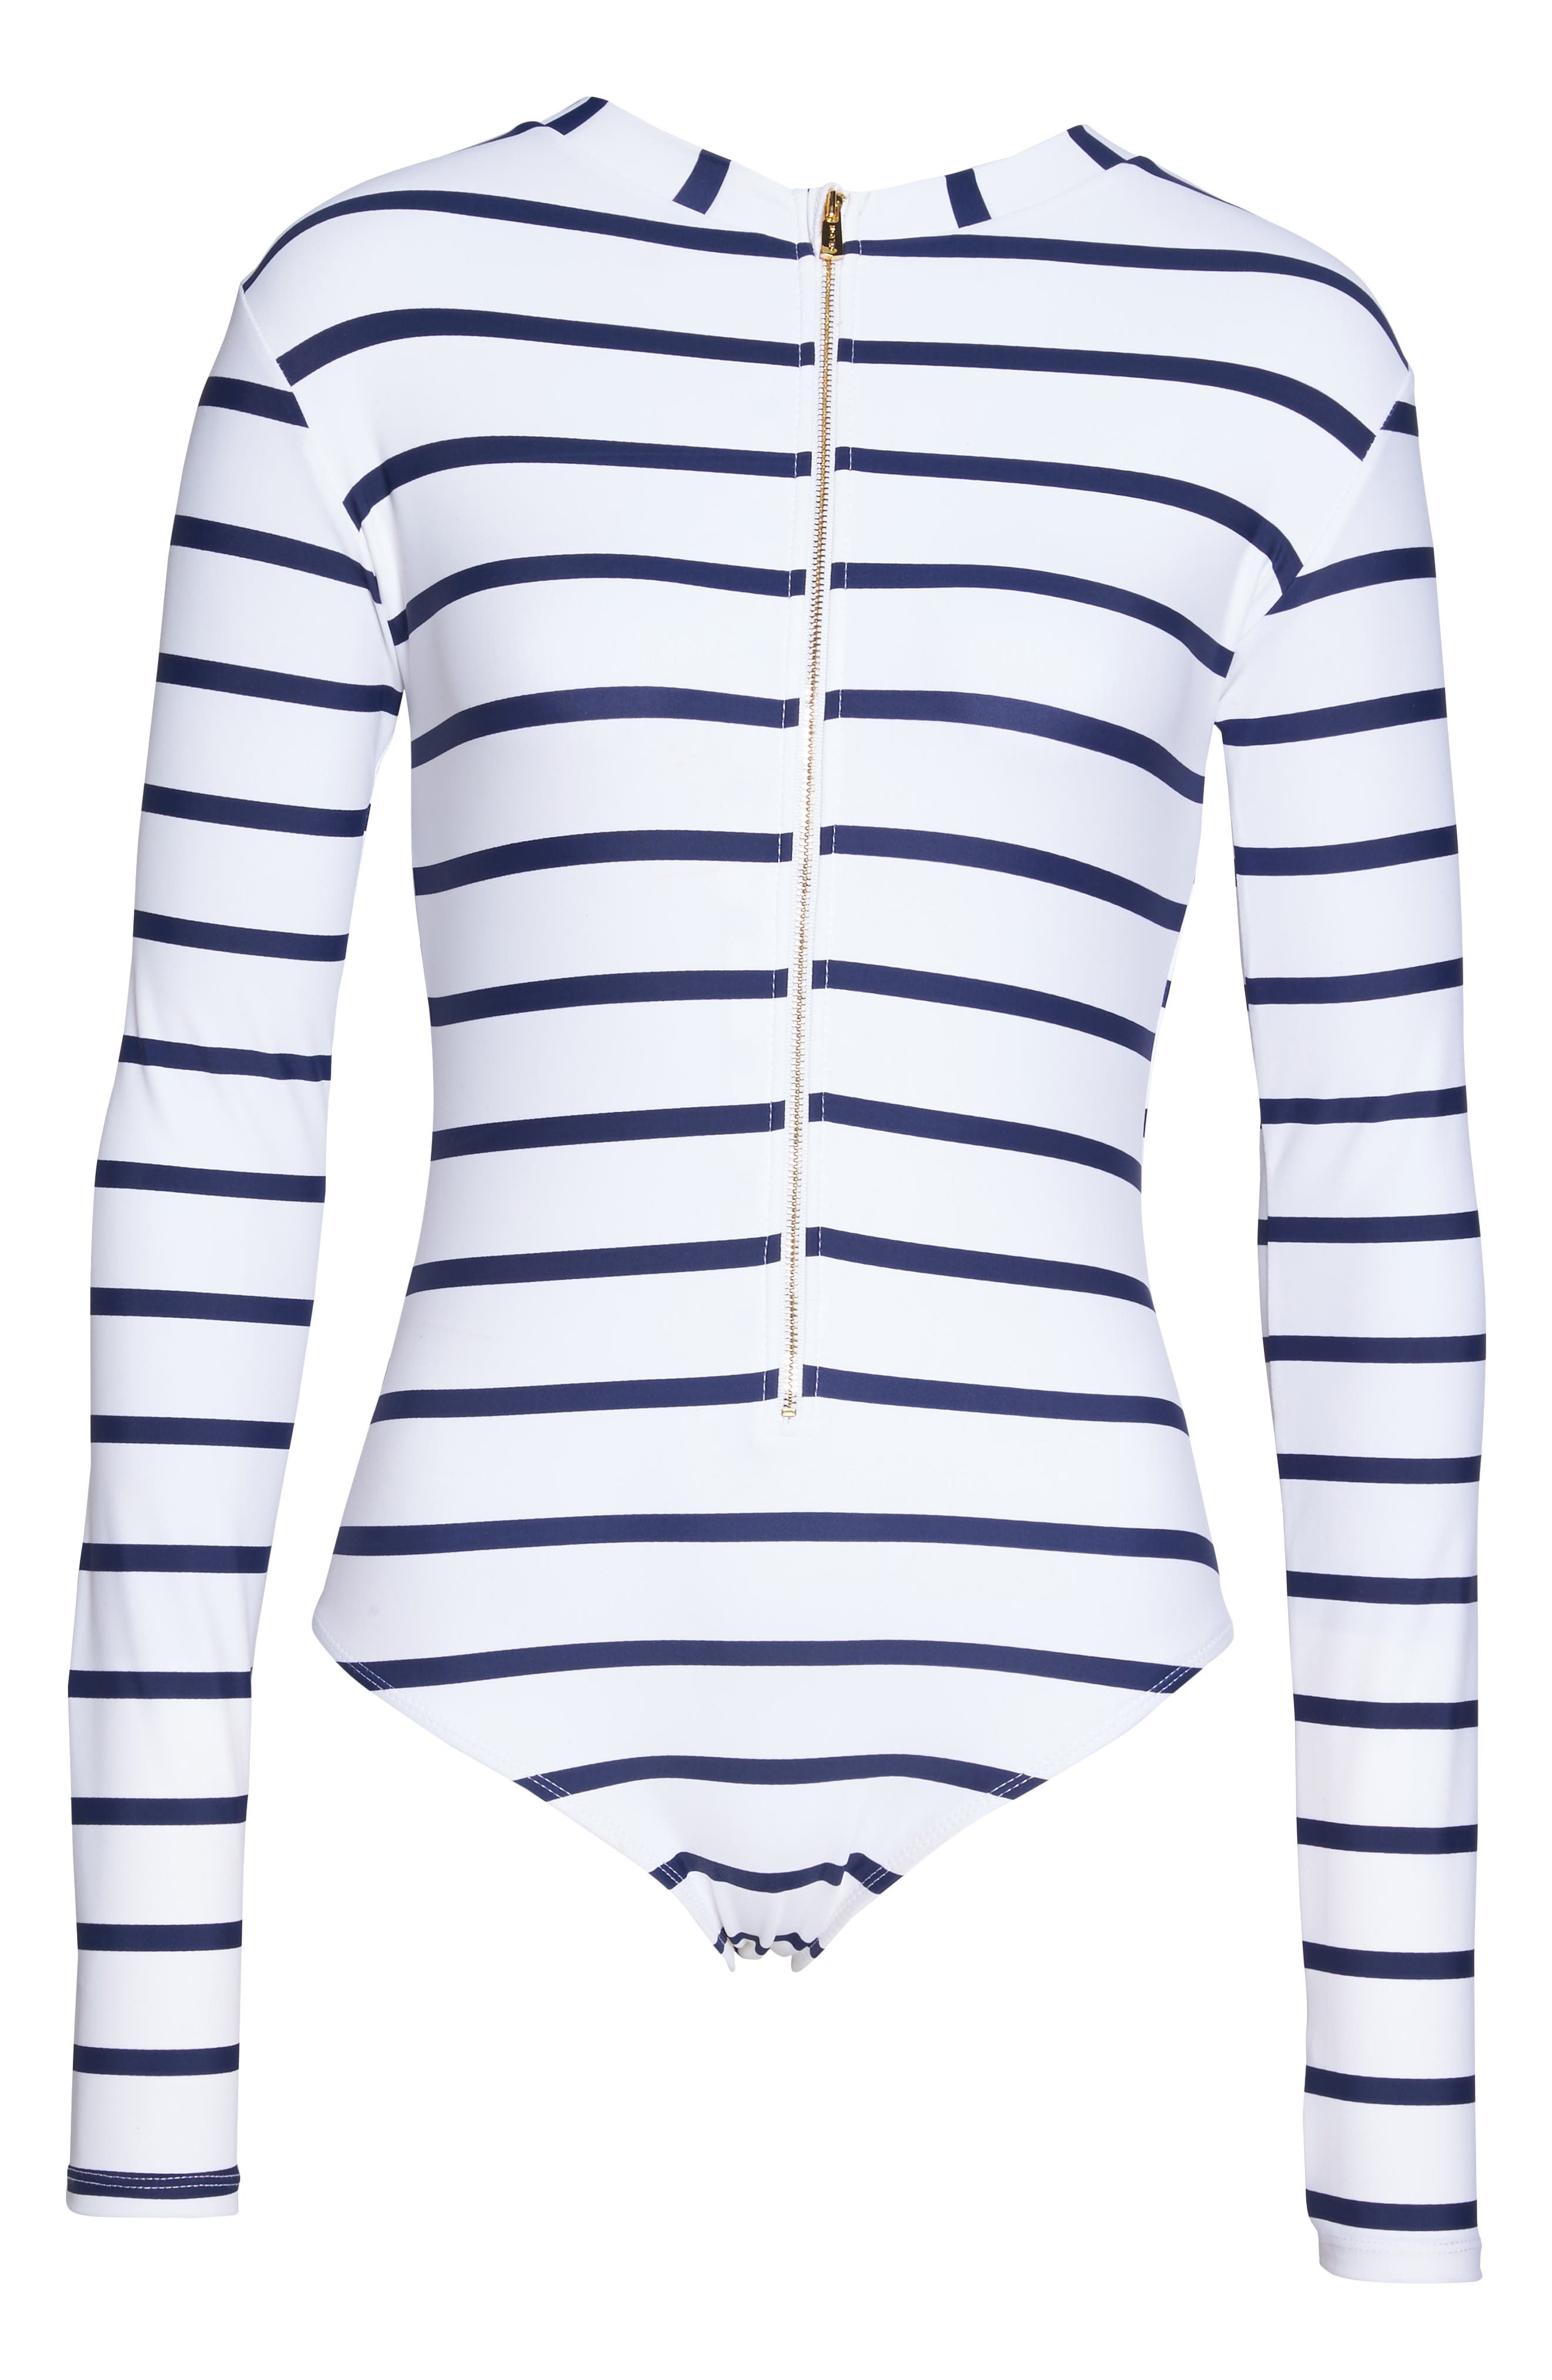 Long Sleeve One-Piece Swimsuit,                             Alternate thumbnail 6, color,                             Navy/ White